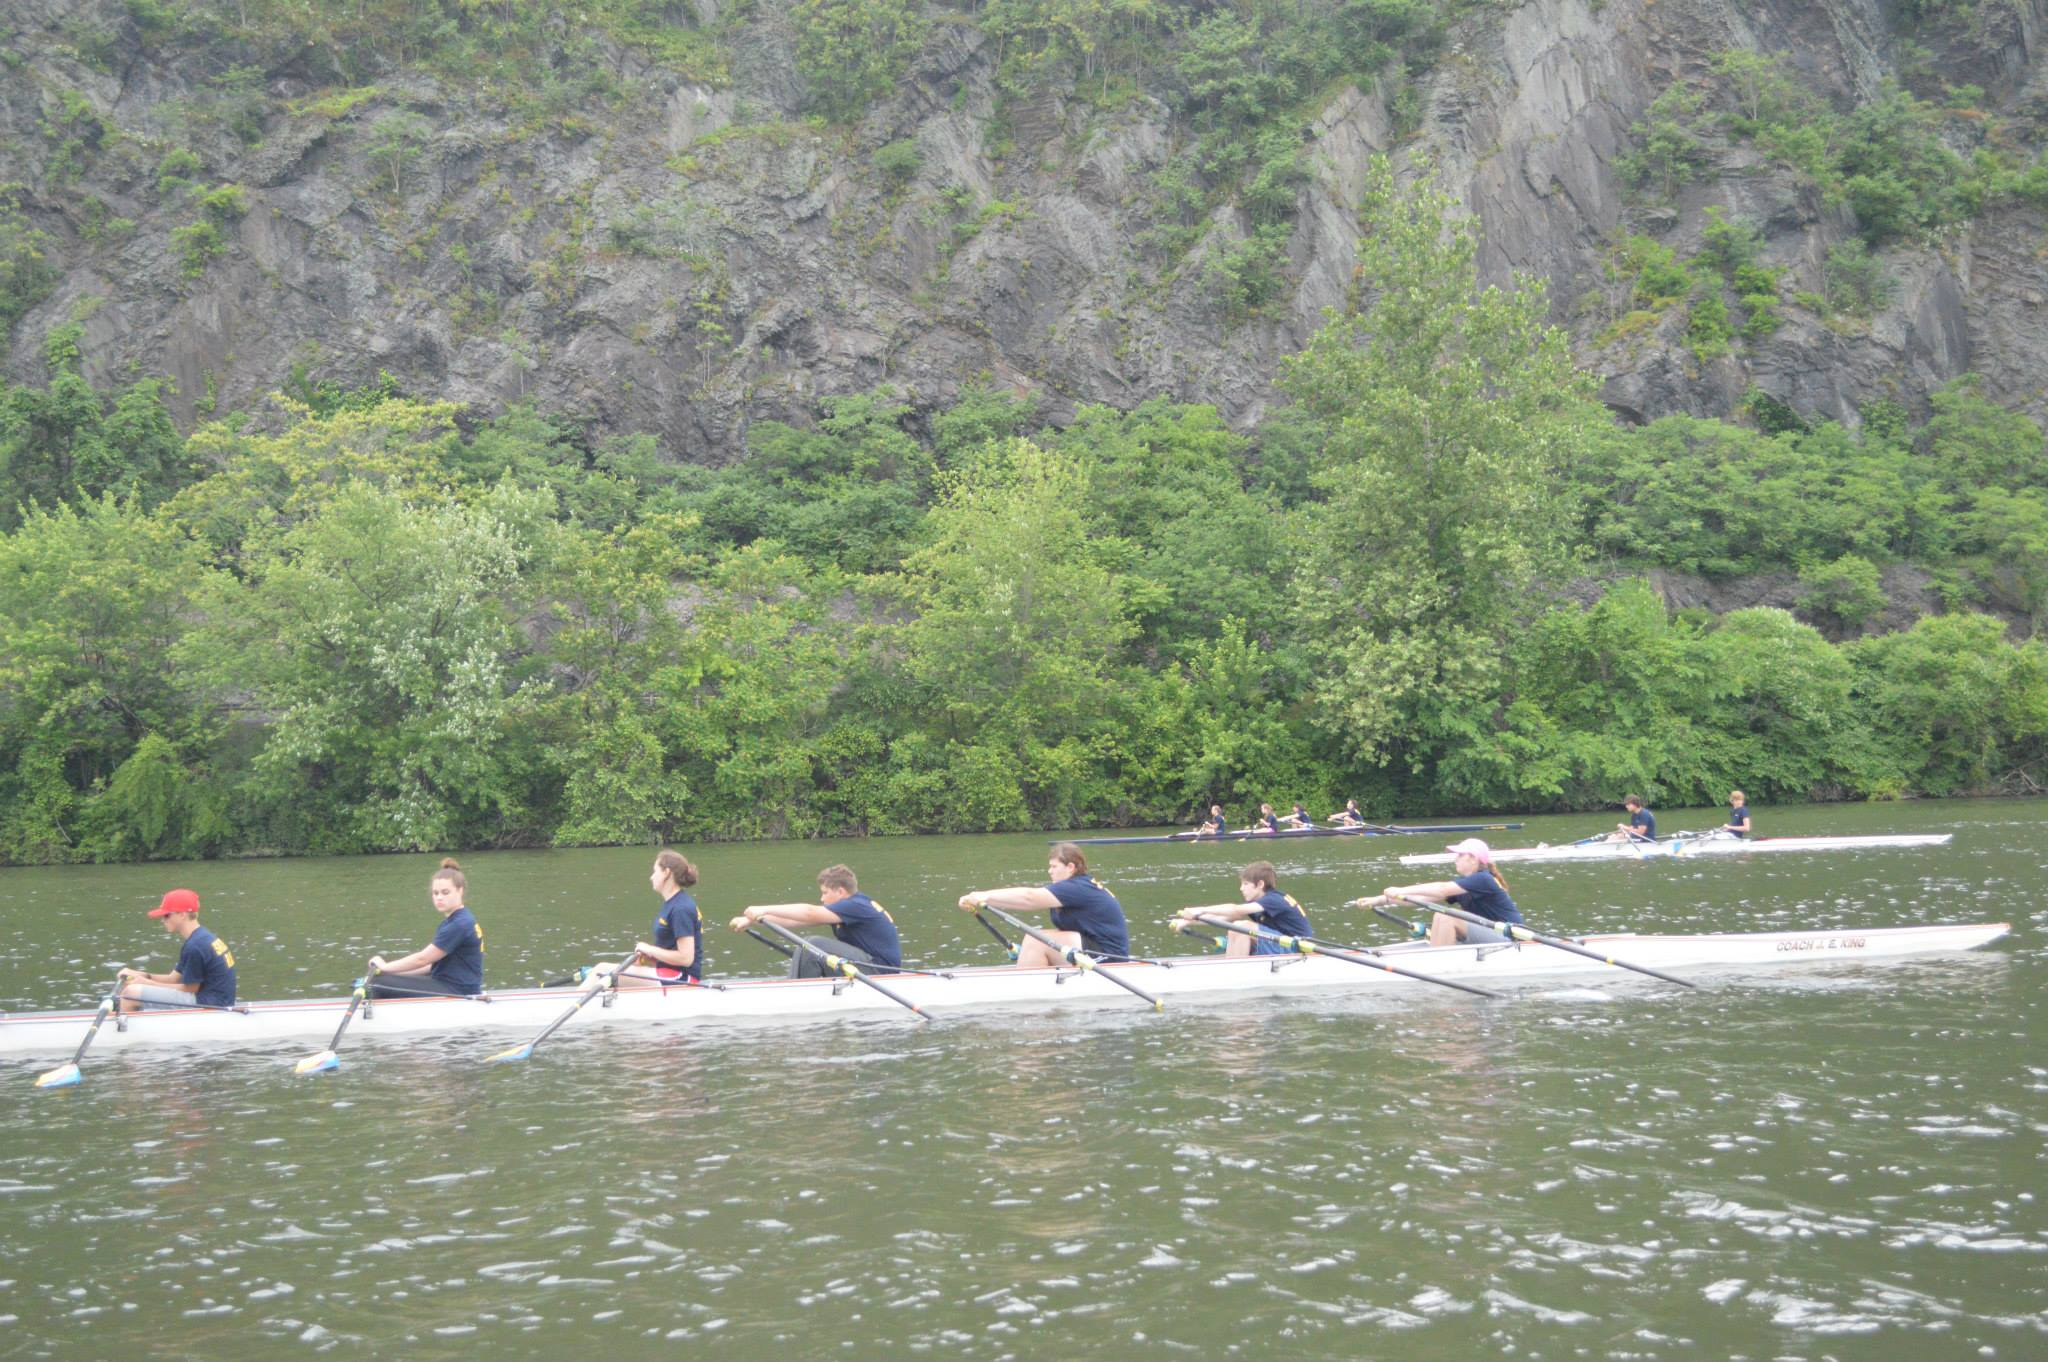 Juniors Rowing - CPRA offers a Juniors rowing program for those youth who have already experienced rowing. This program will refine your skills and culminate in participation in either a sprint race (summer) and/or a head race (fall) regatta.